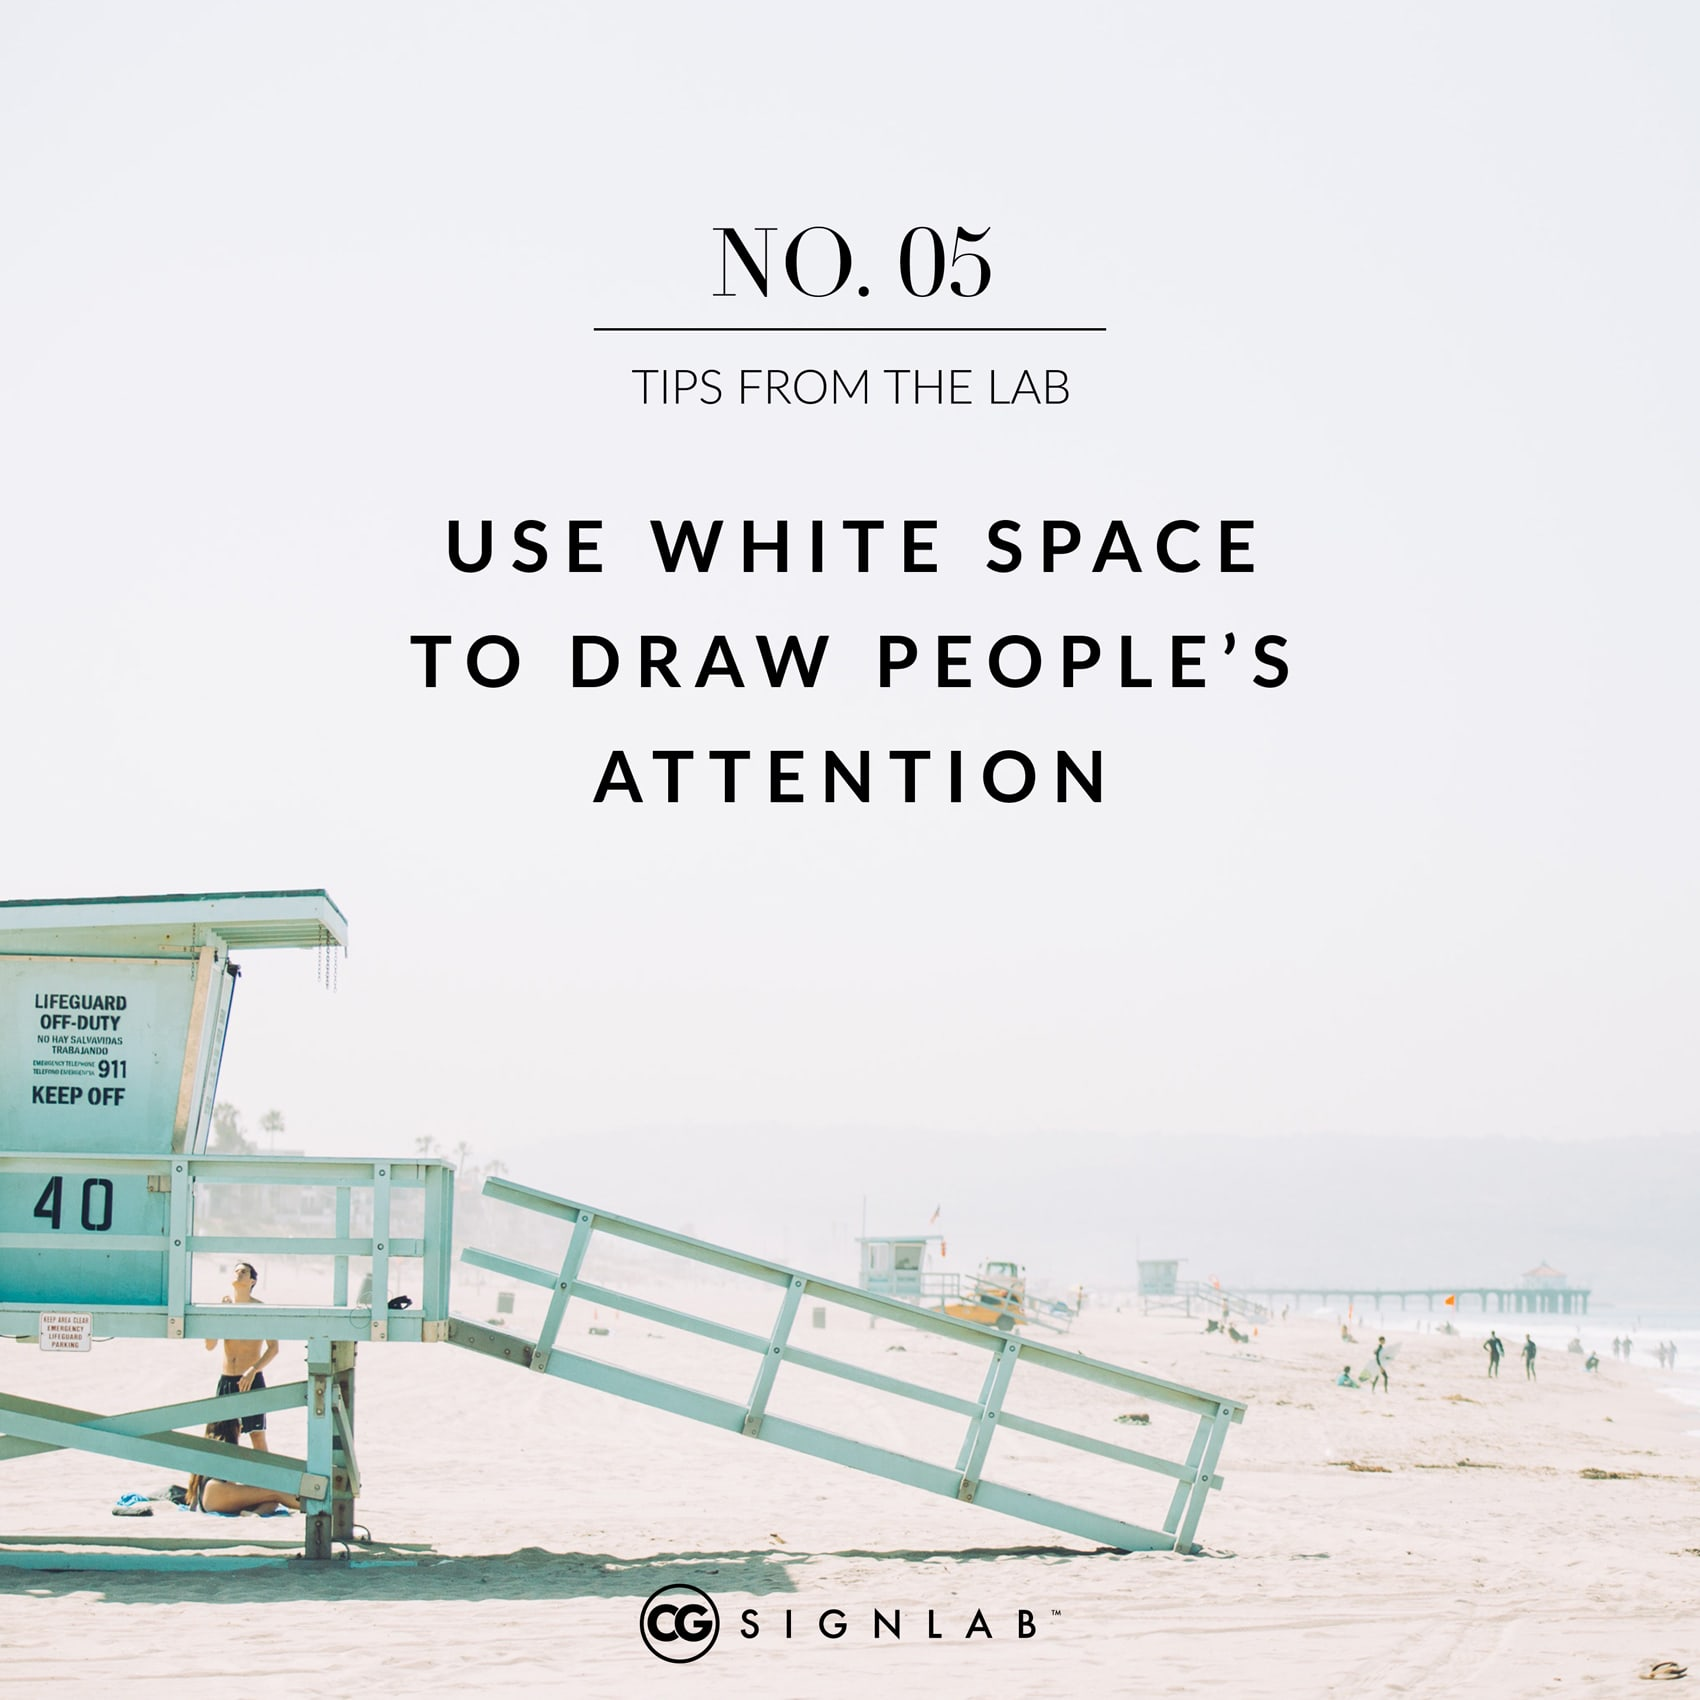 Use White Space to Draw People's Attention